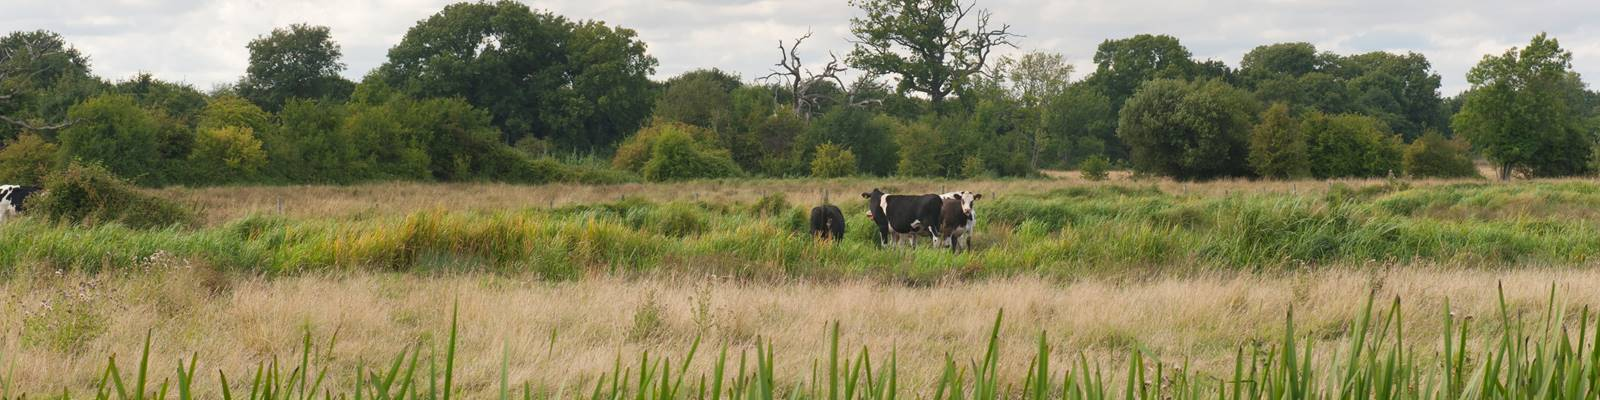 Itchen_Valley_Country_Park5.jpg